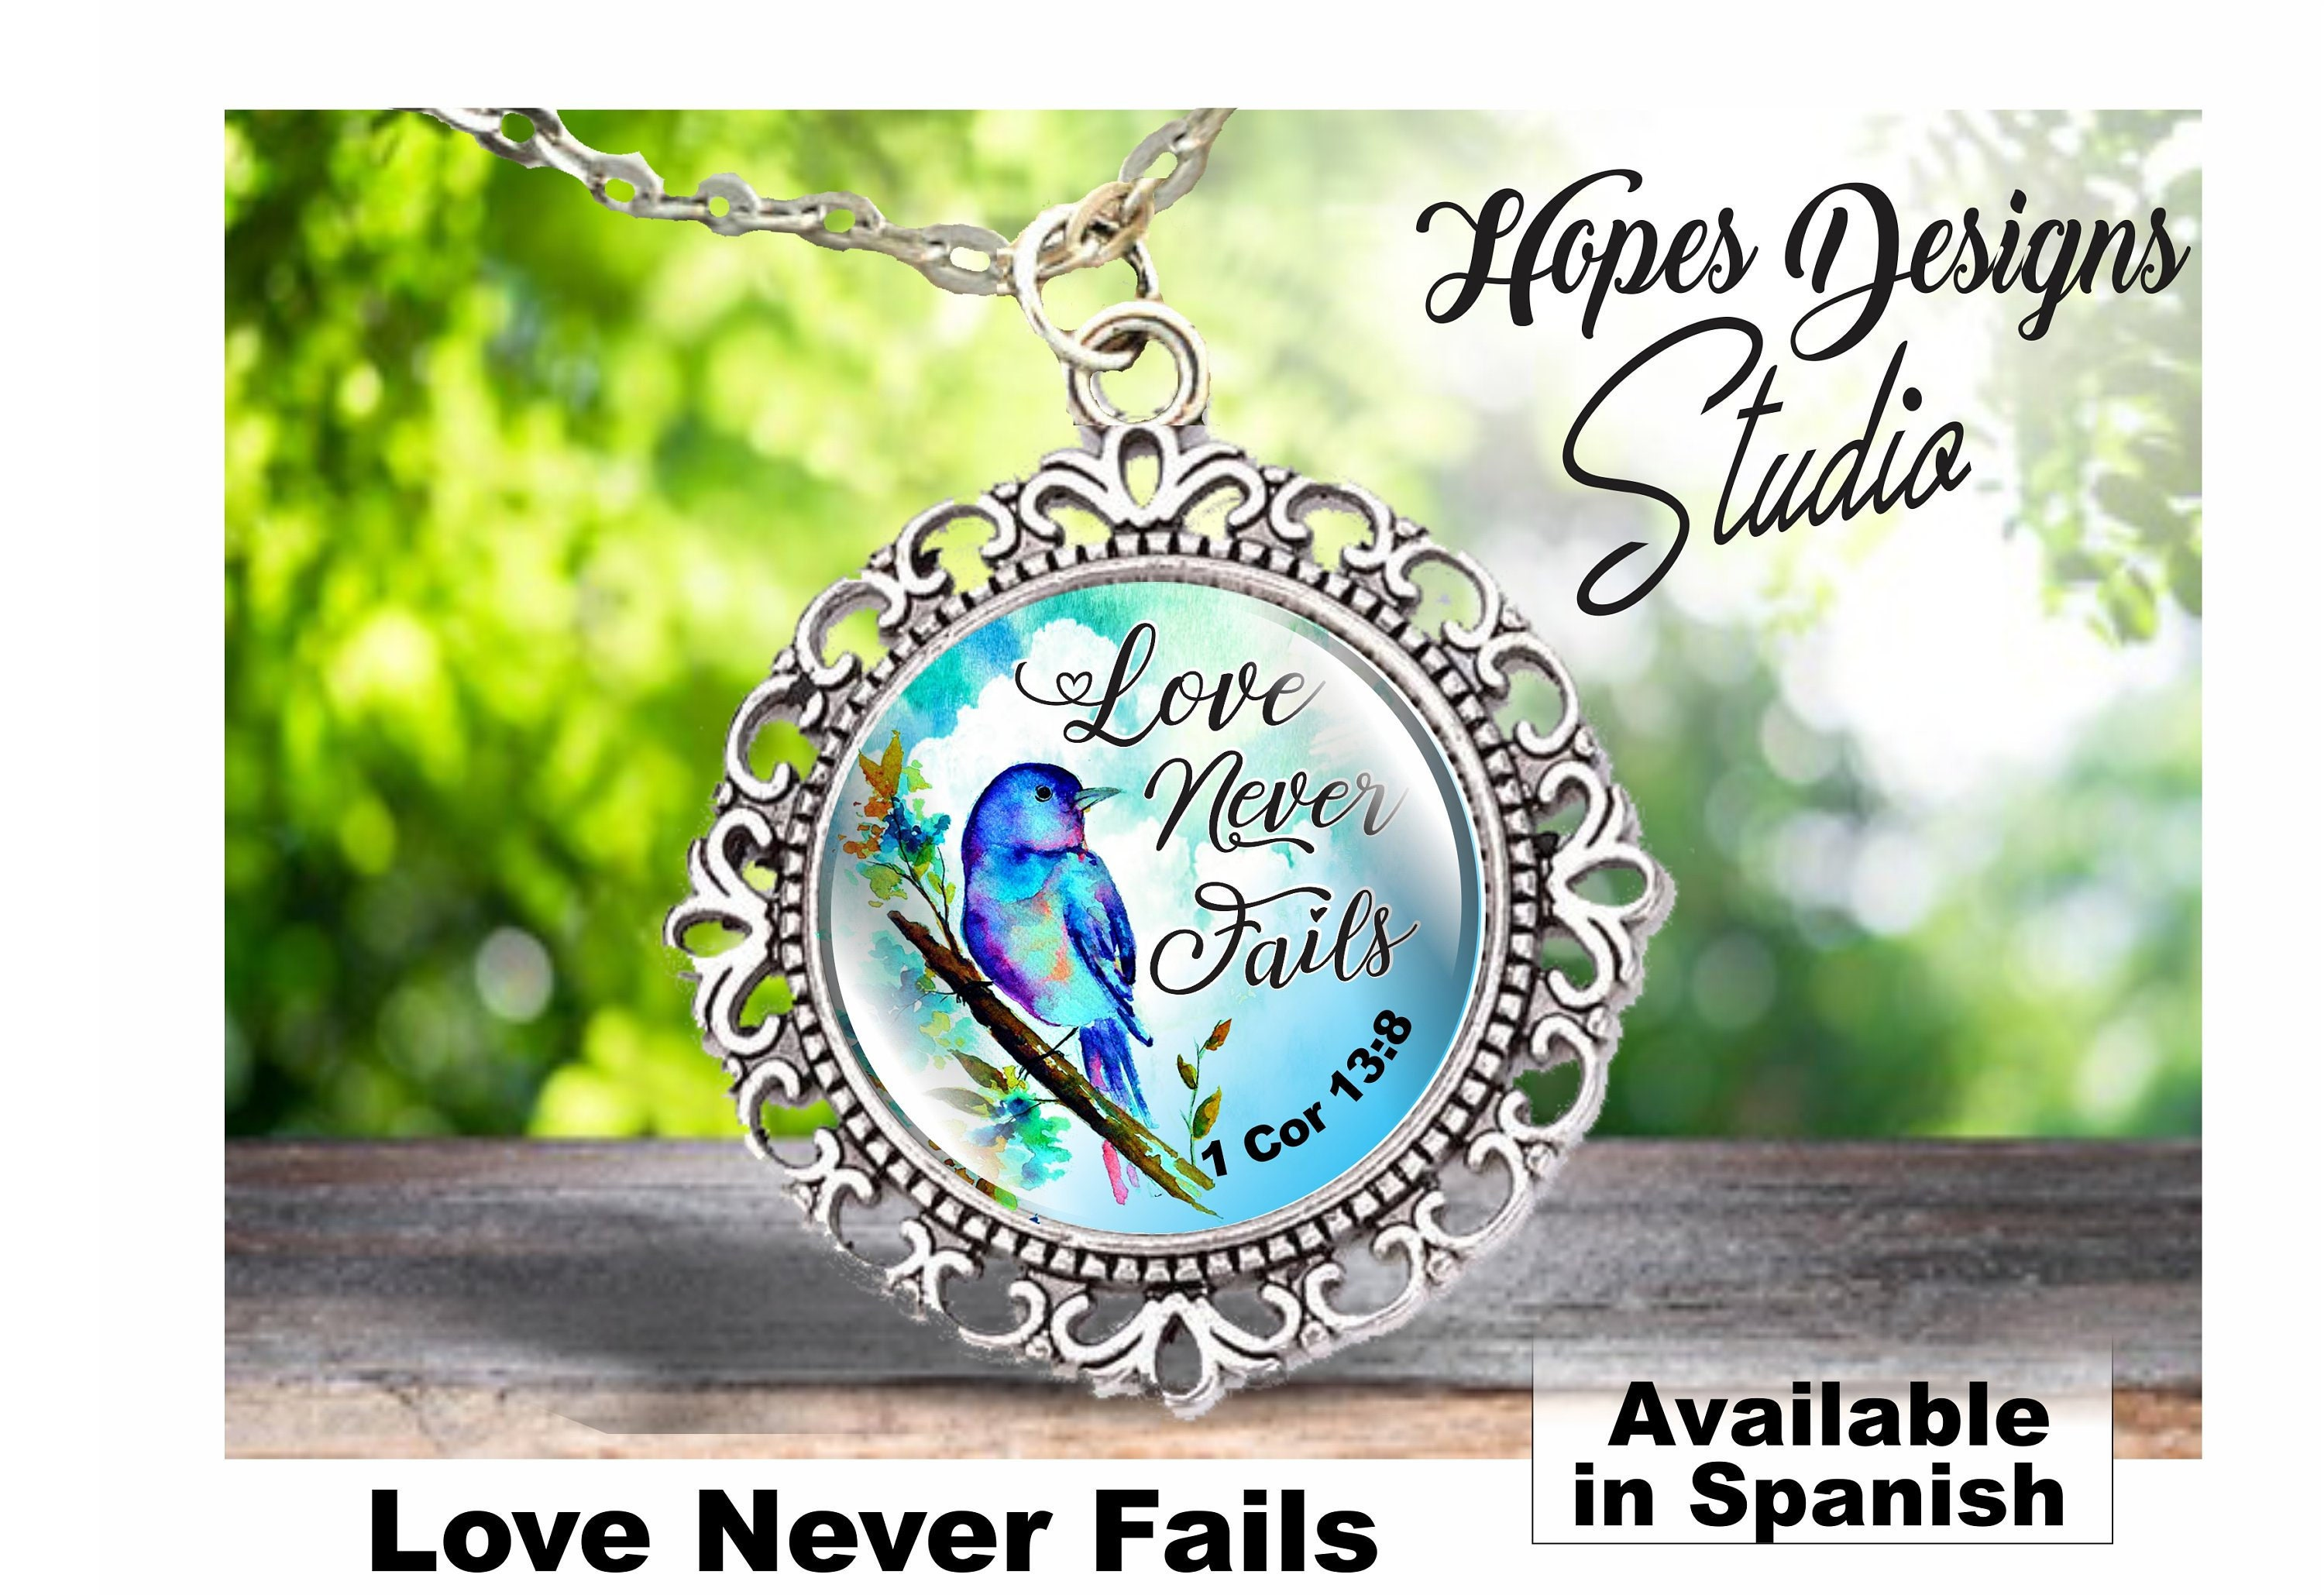 JW gifts/necklace/Love Never Fails 1Cor 13:8/jw org/convention  gift/jw org/pioneer gift/baptism gift/jw jewelry/jw stuff/best life ever